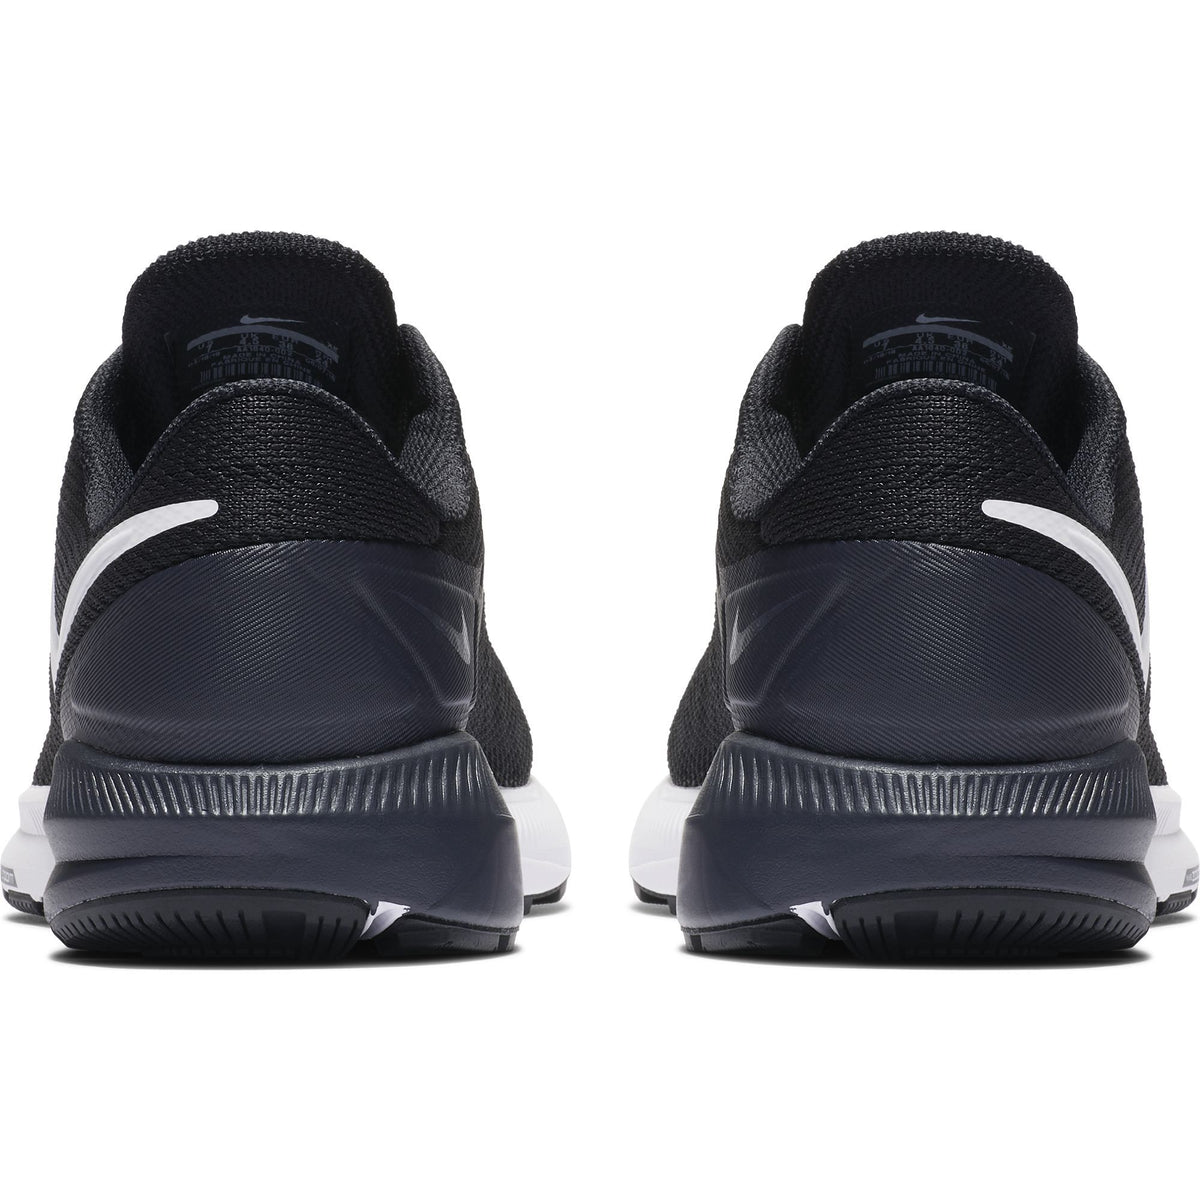 Nike Air Zoom Structure 22 Womens - Sole Motive